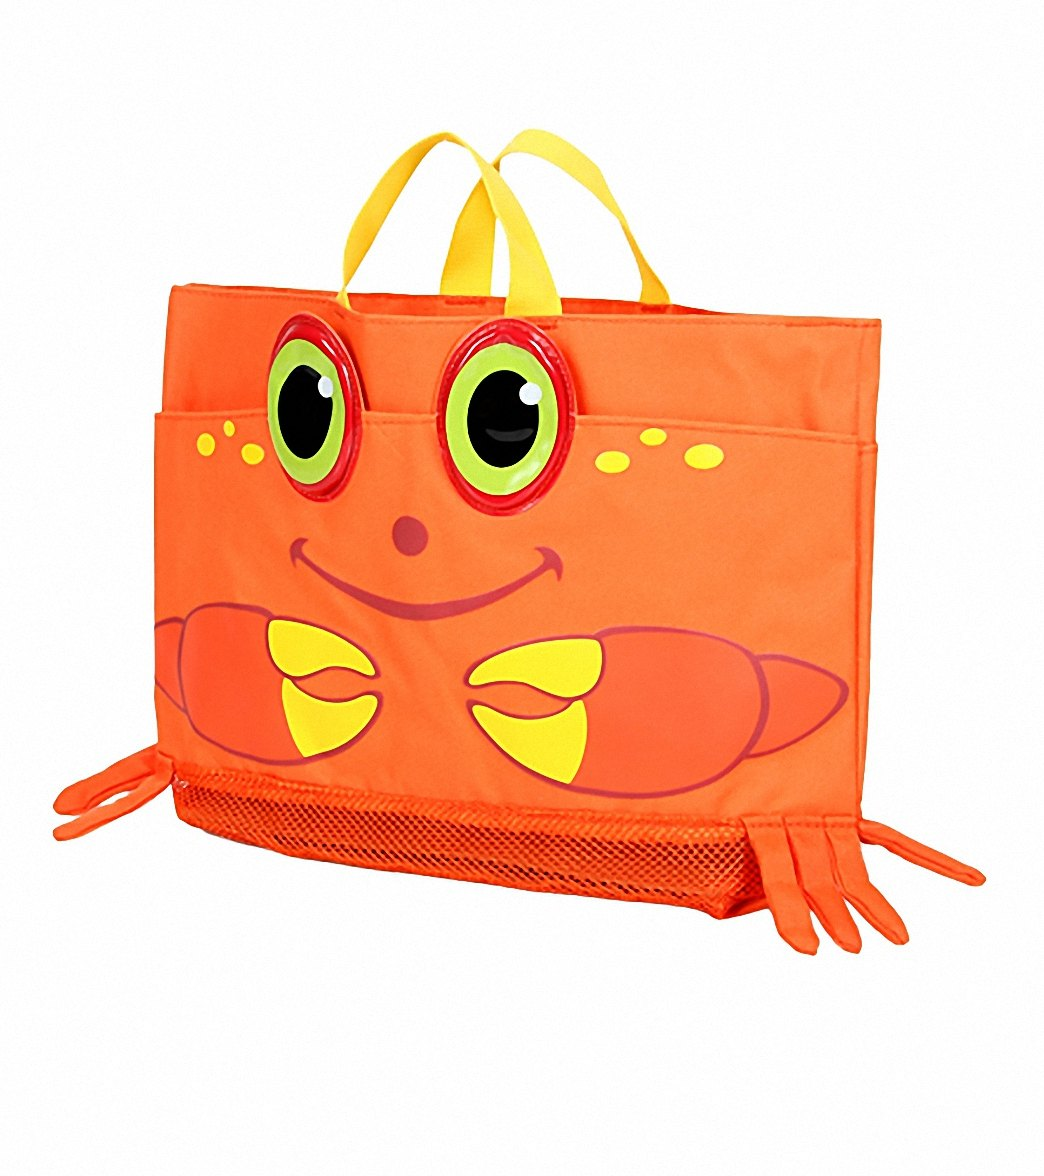 Melissa & Doug Kids' Beach Tote Beach Bag at SwimOutlet.com